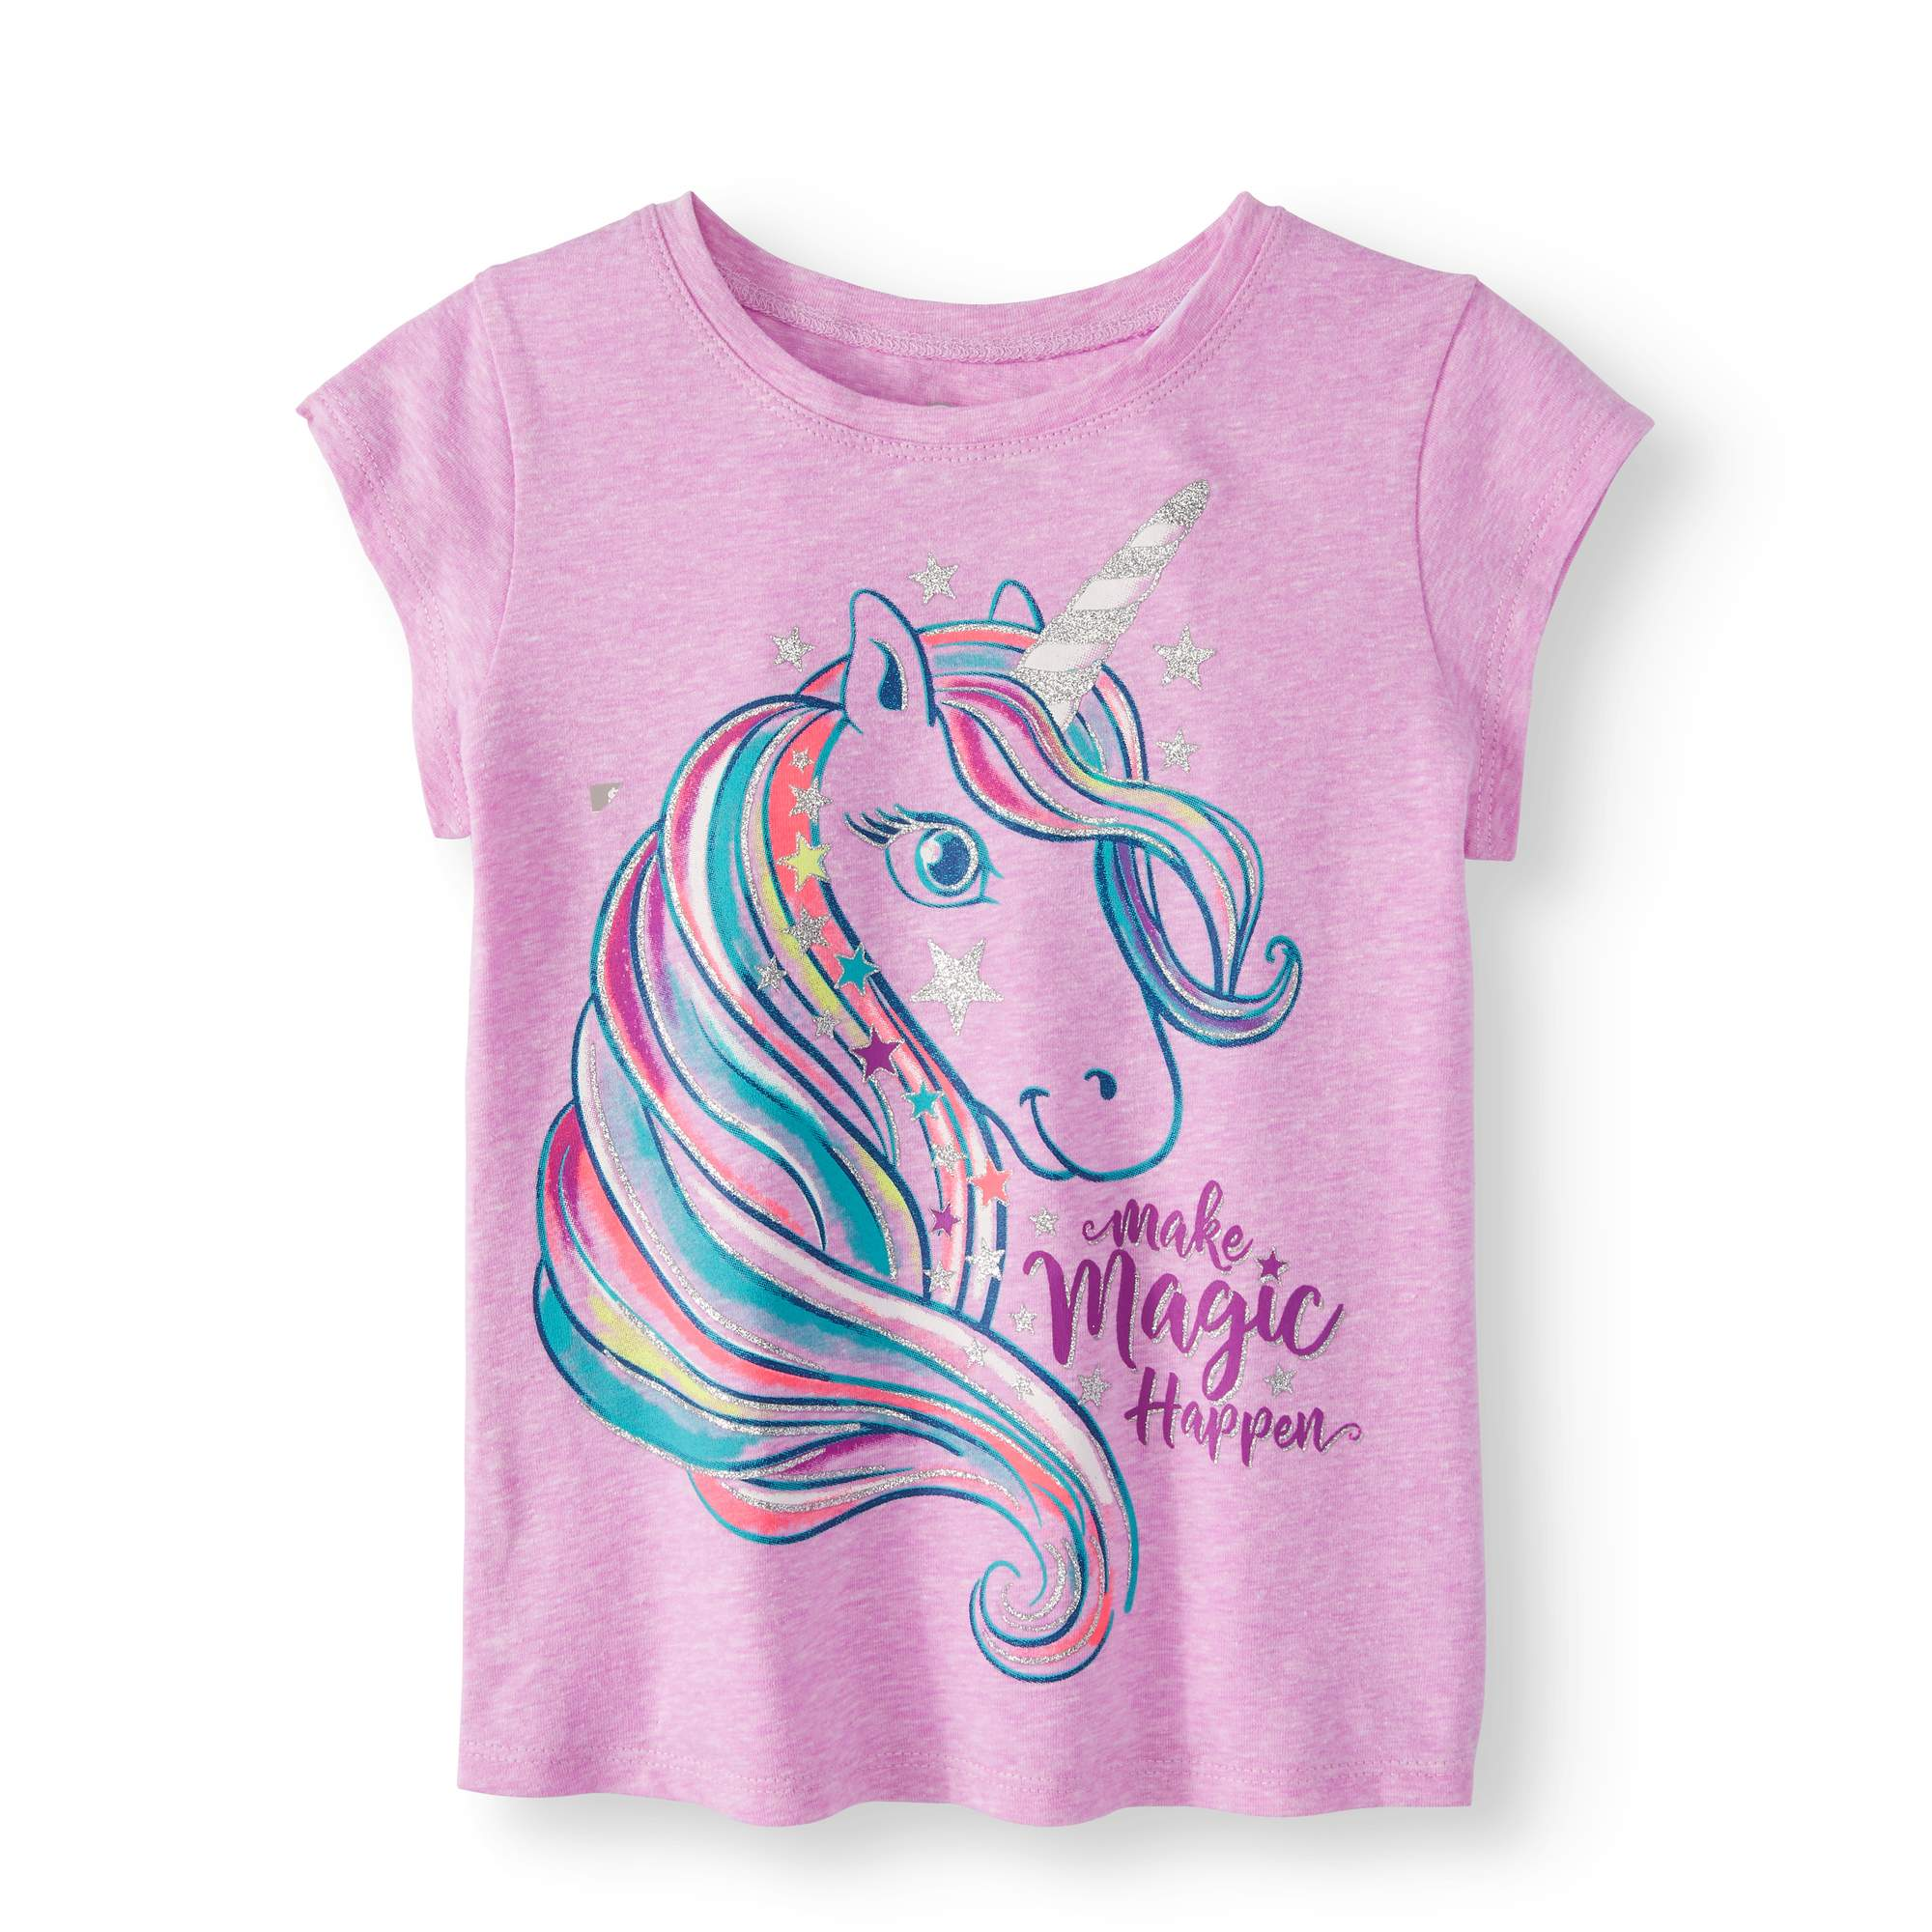 Little Girls' 4-8 Short Sleeve Graphic T-Shirt